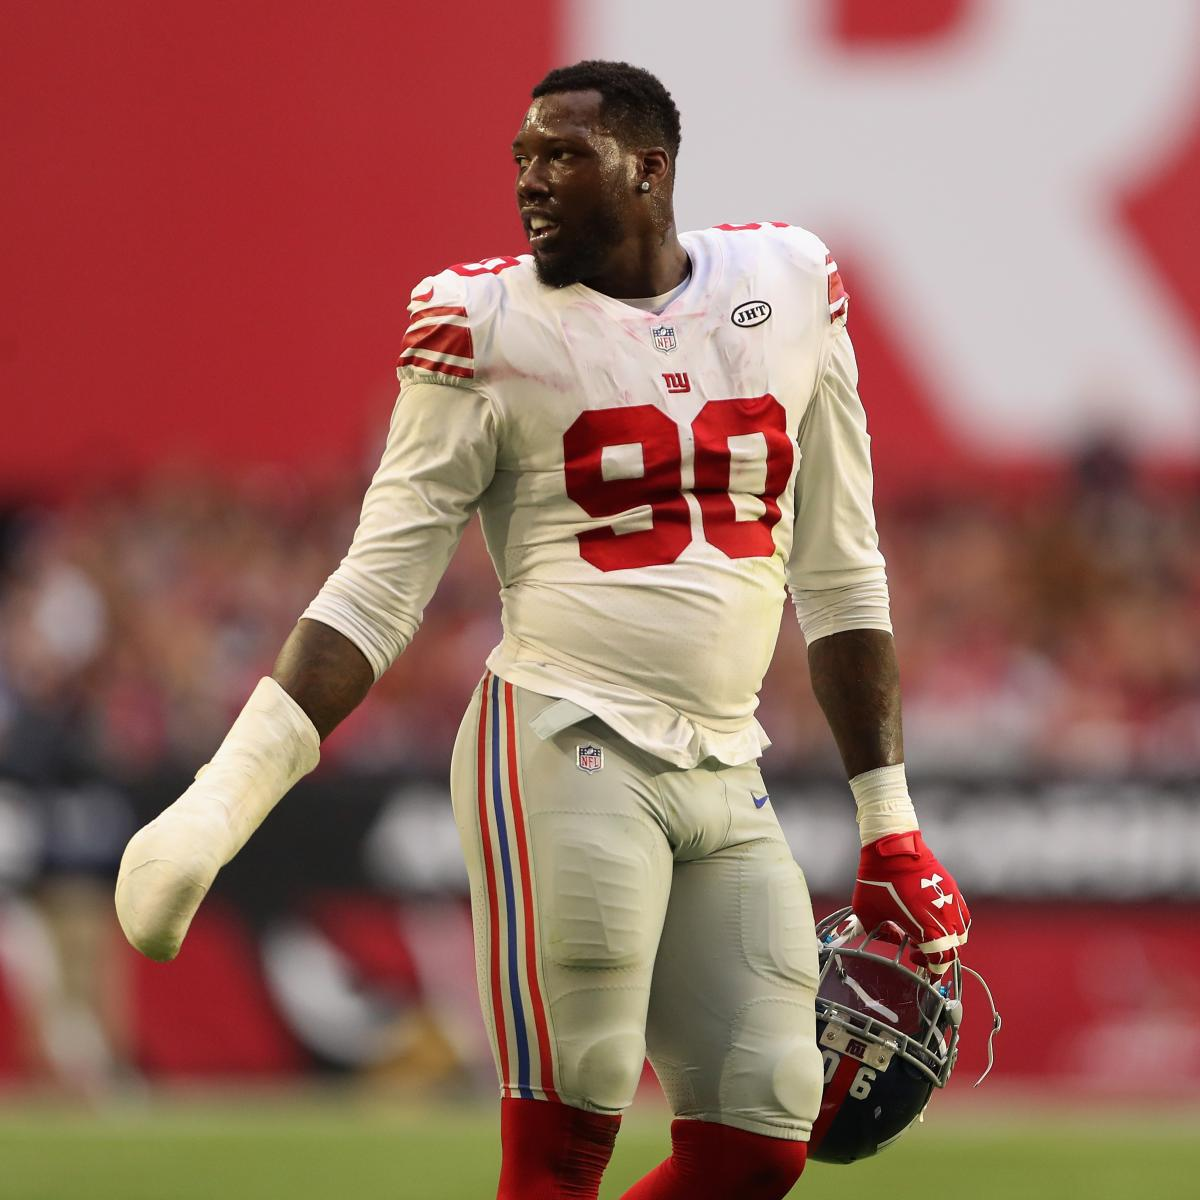 Jason Pierre-Paul Trade Ends Another Giants Era, And